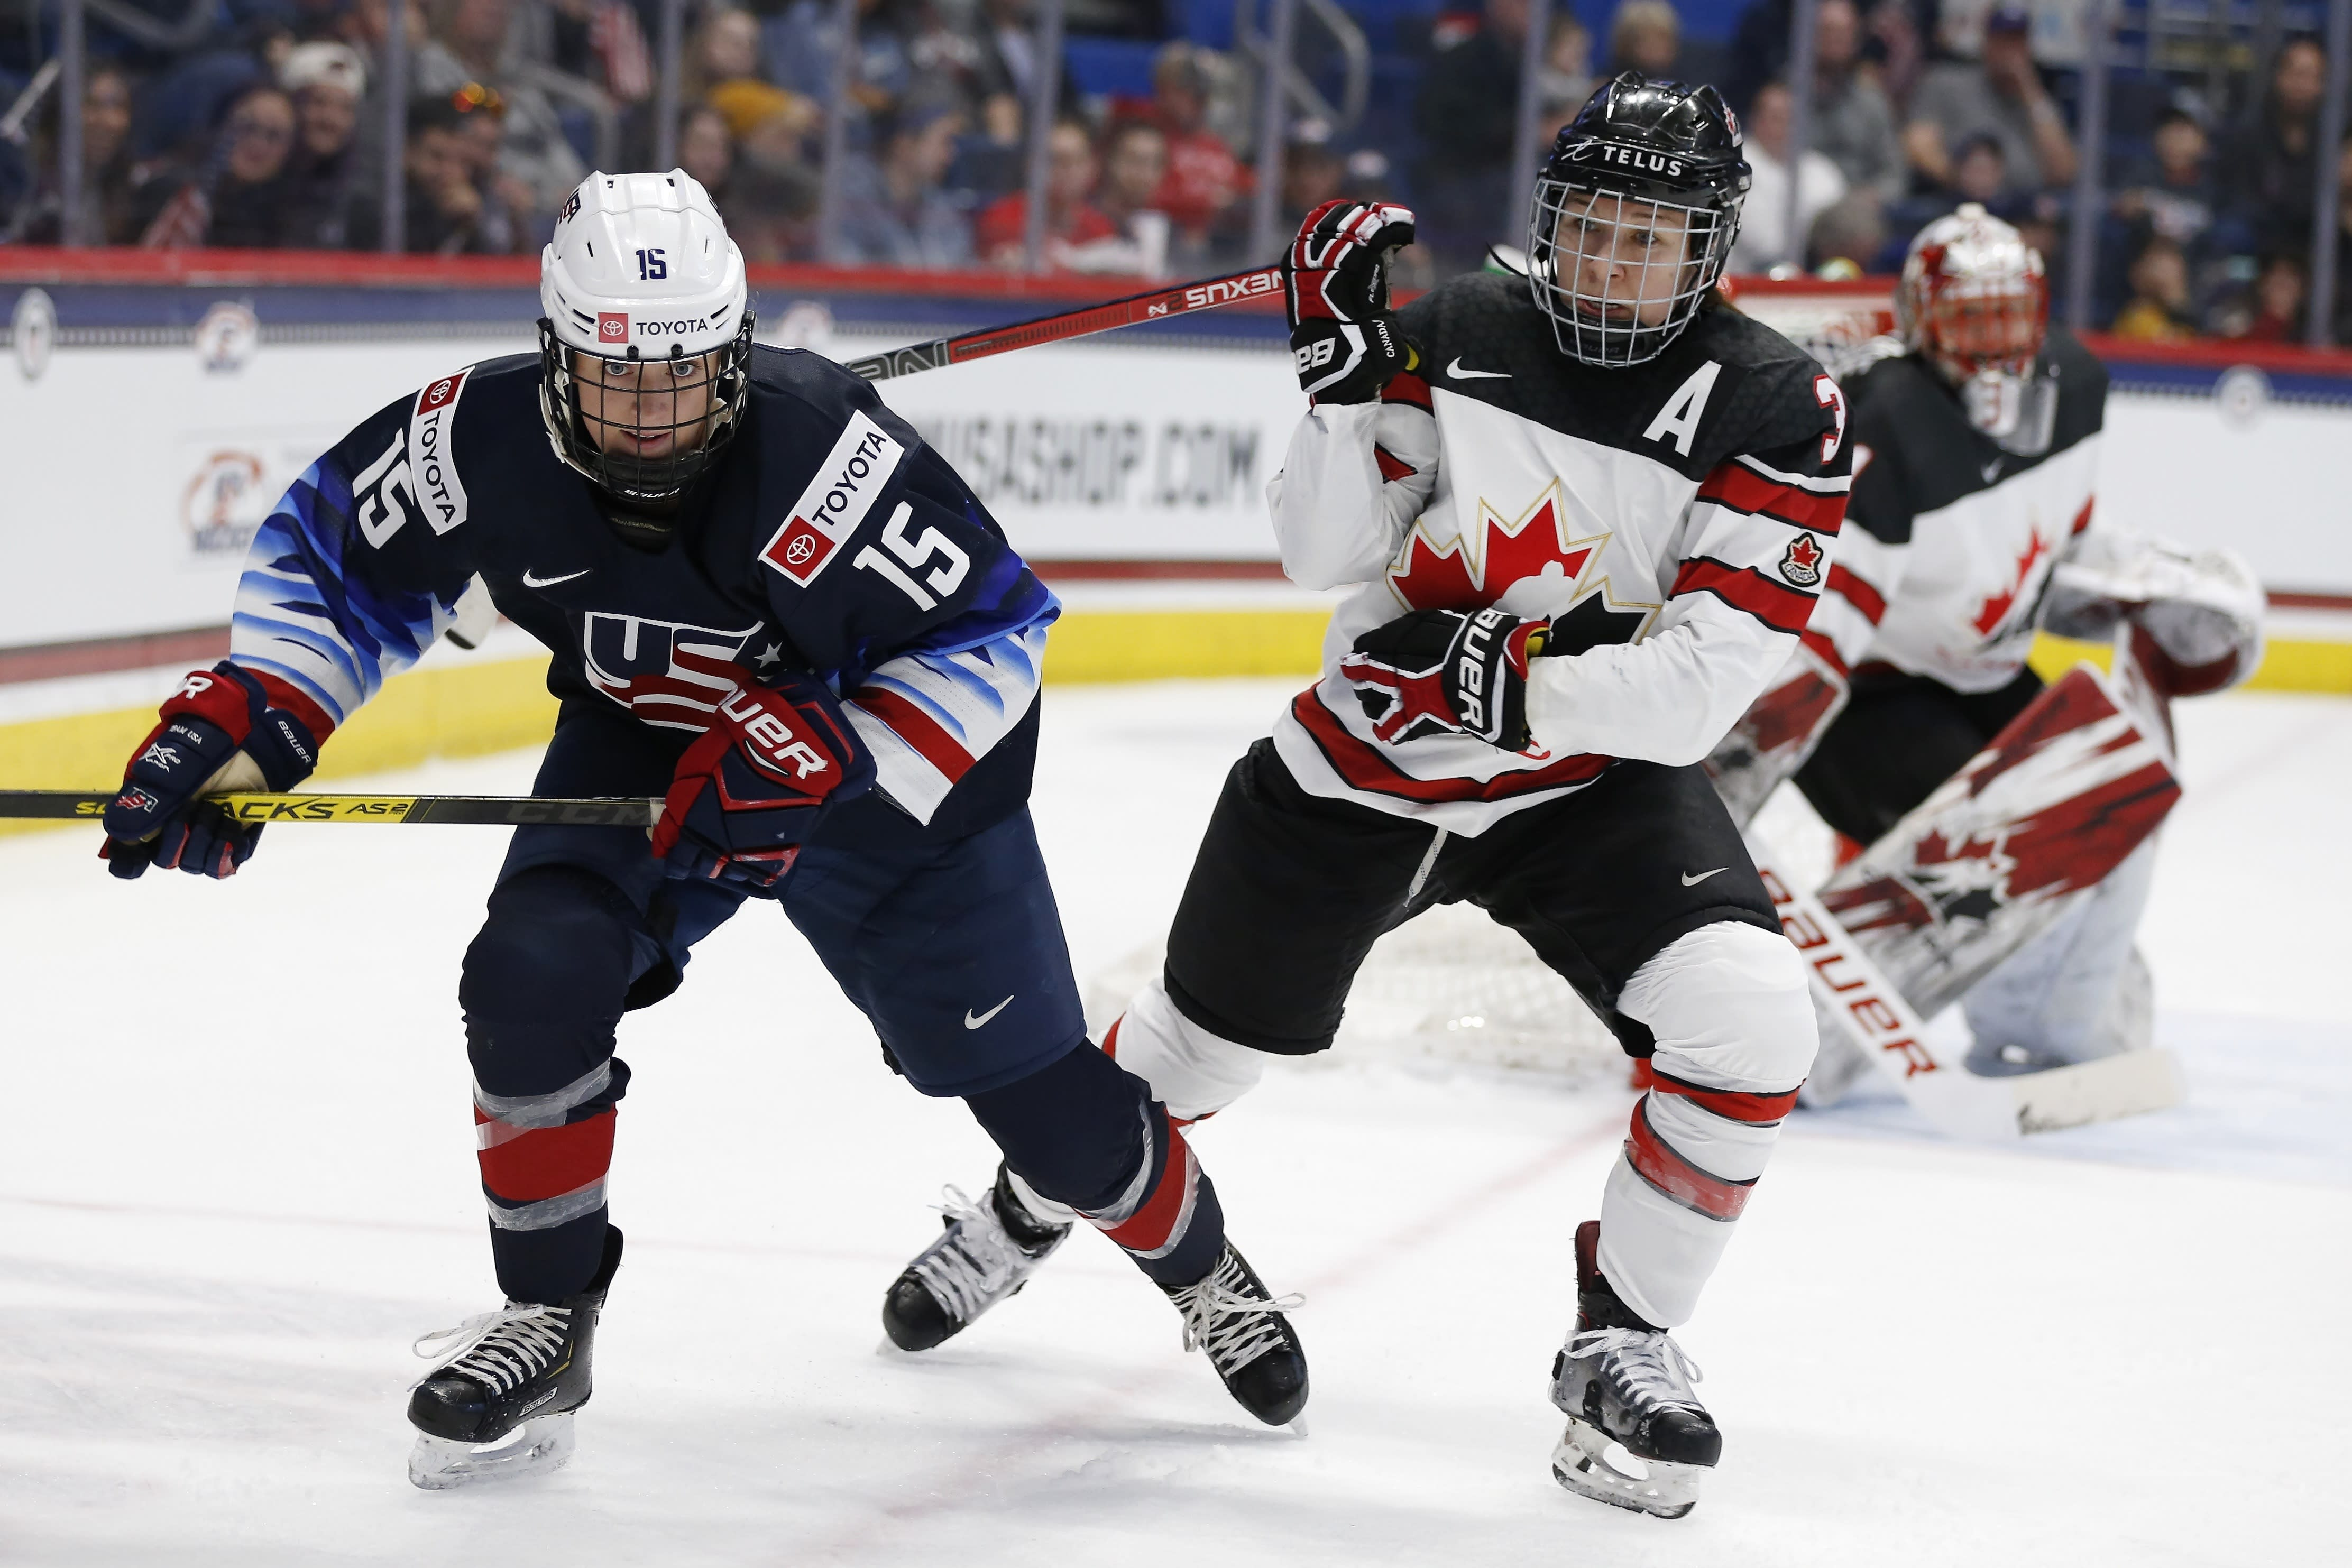 Canada's Jocelyne Larocque (3) defends against United States' Sydney Brodt (15) during the first period of a rivalry series women's hockey game in Hartford, Conn., Saturday, Dec. 14, 2019. (AP Photo/Michael Dwyer)